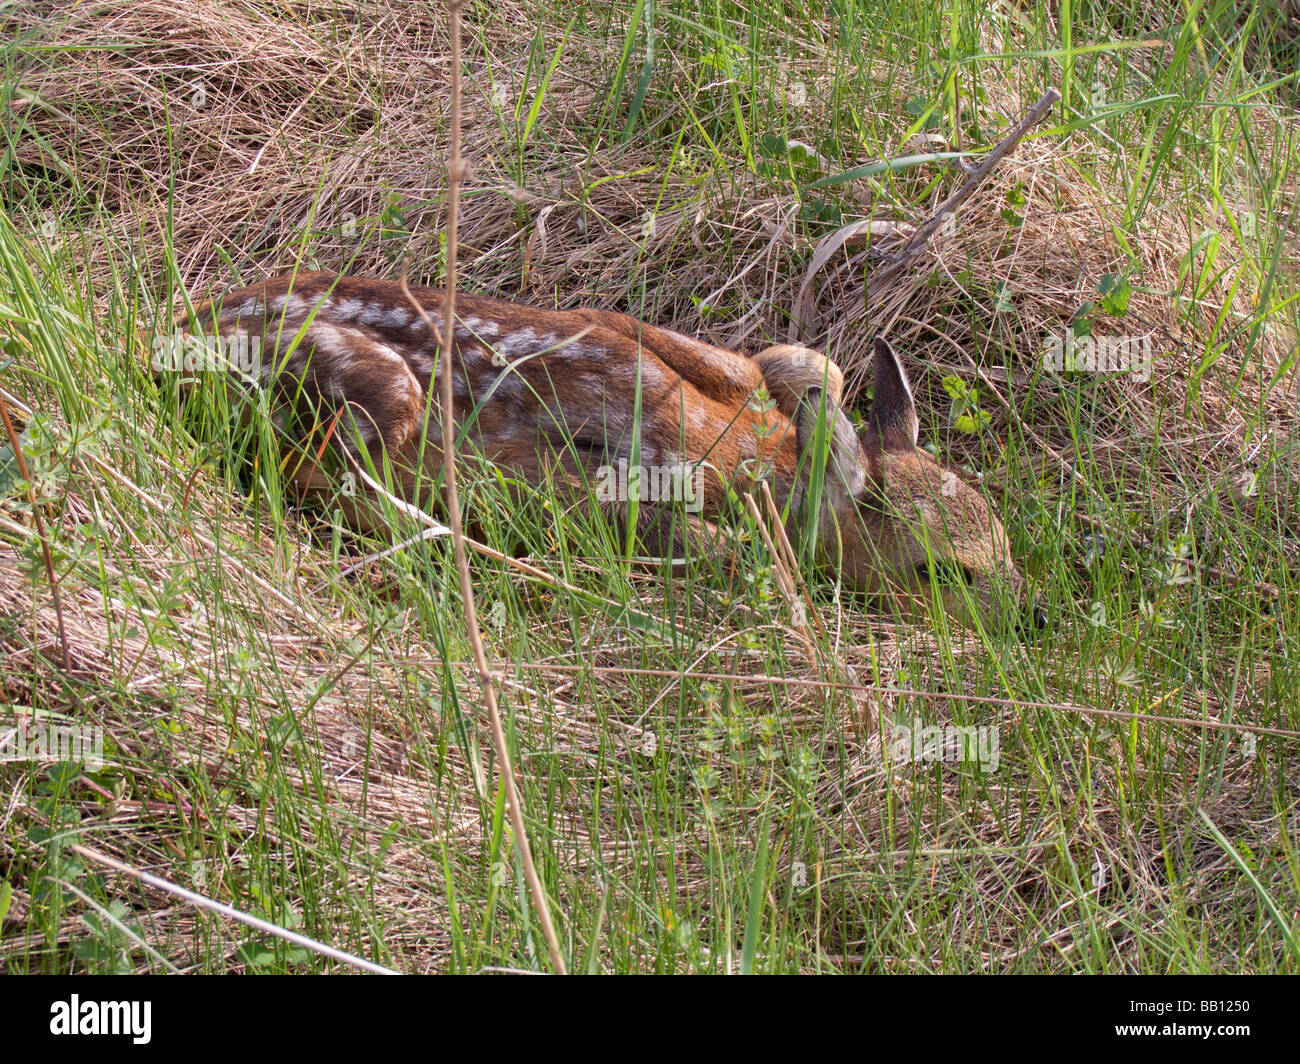 young babe roe deer - Stock Image